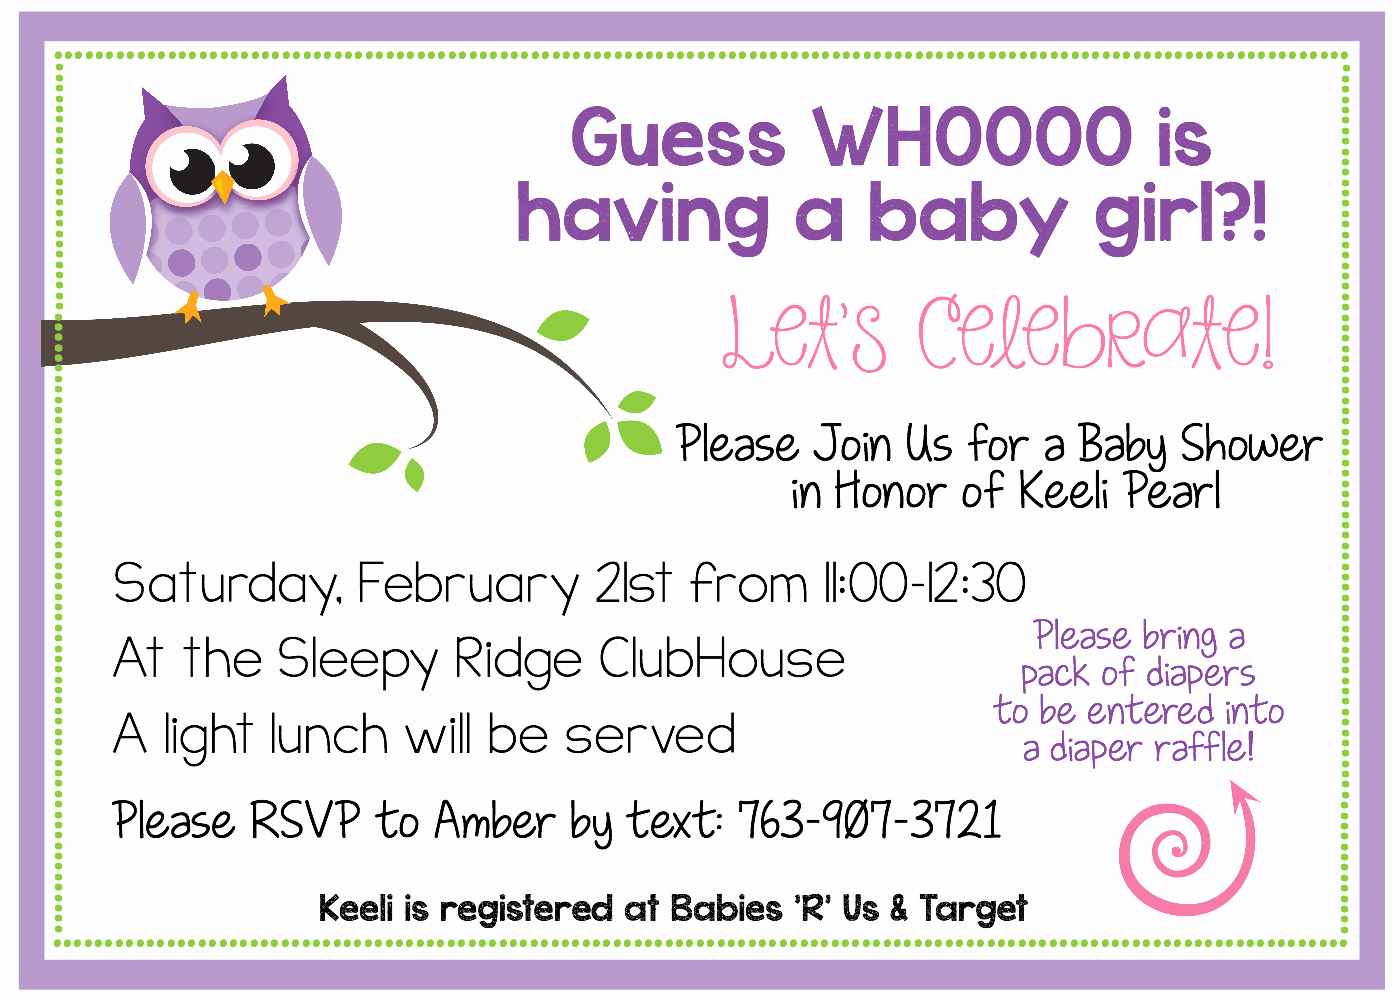 Baby Shower Pics for Invitation Luxury Free Printable Owl Baby Shower Invitations & Other